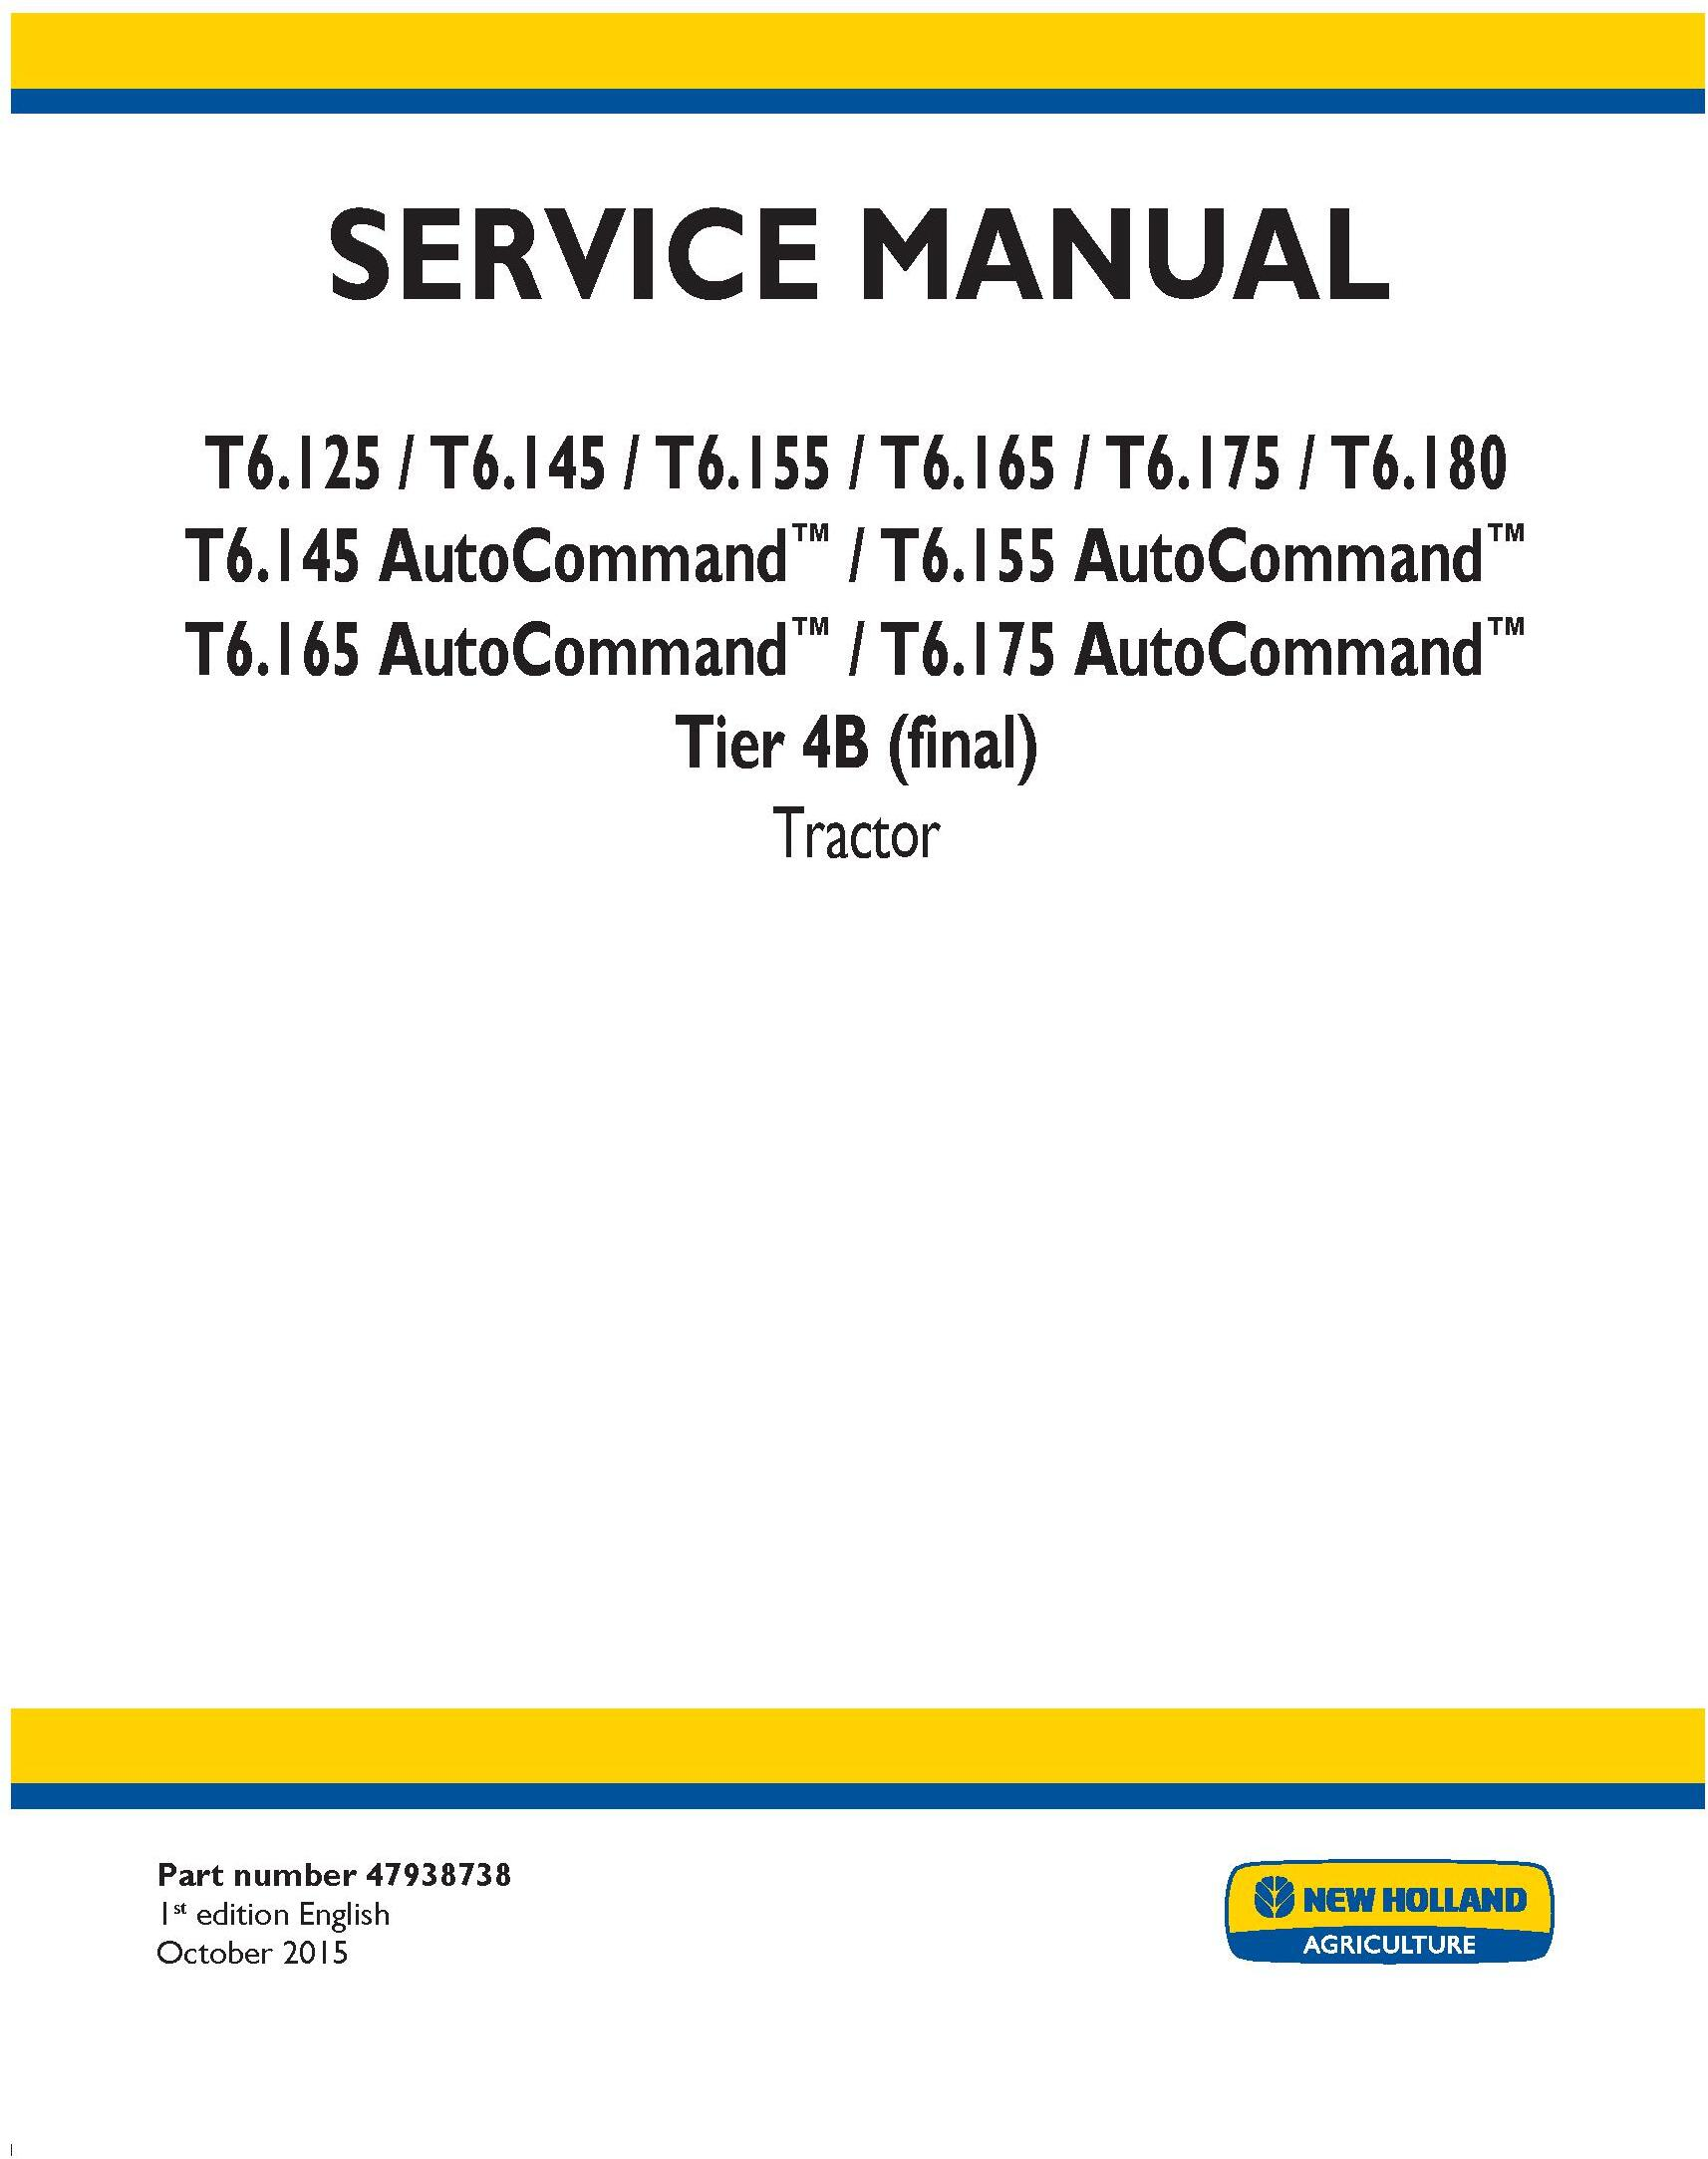 New Holland T6.125, T6.145, T6.155, T6.165, T6.175, T6.180 Auto Command Tractor Service Manual (USA) - 19469